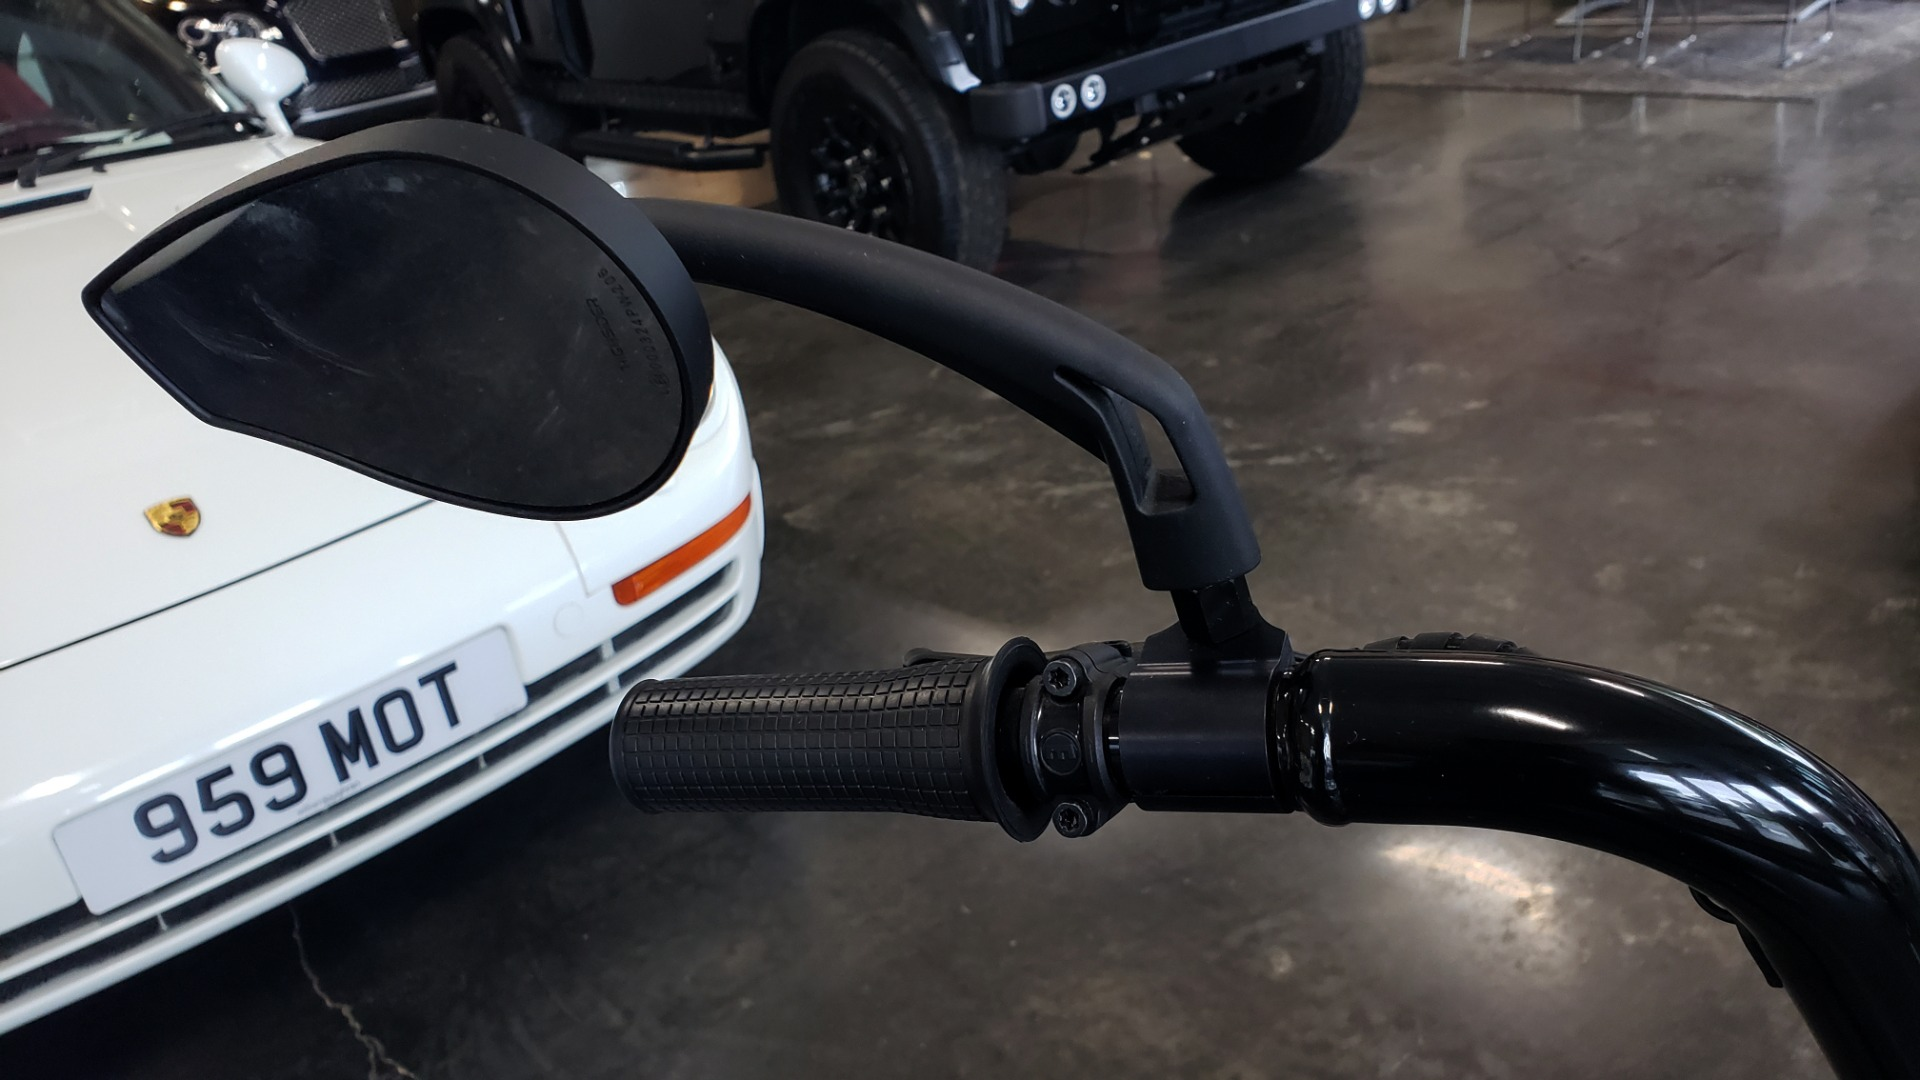 Used 2018 SCROOSER ELECTRIC SCOOTER SELF BALANCED / PITCH BLACK / 15.5 MPH / 34 MI RANGE for sale Sold at Formula Imports in Charlotte NC 28227 10